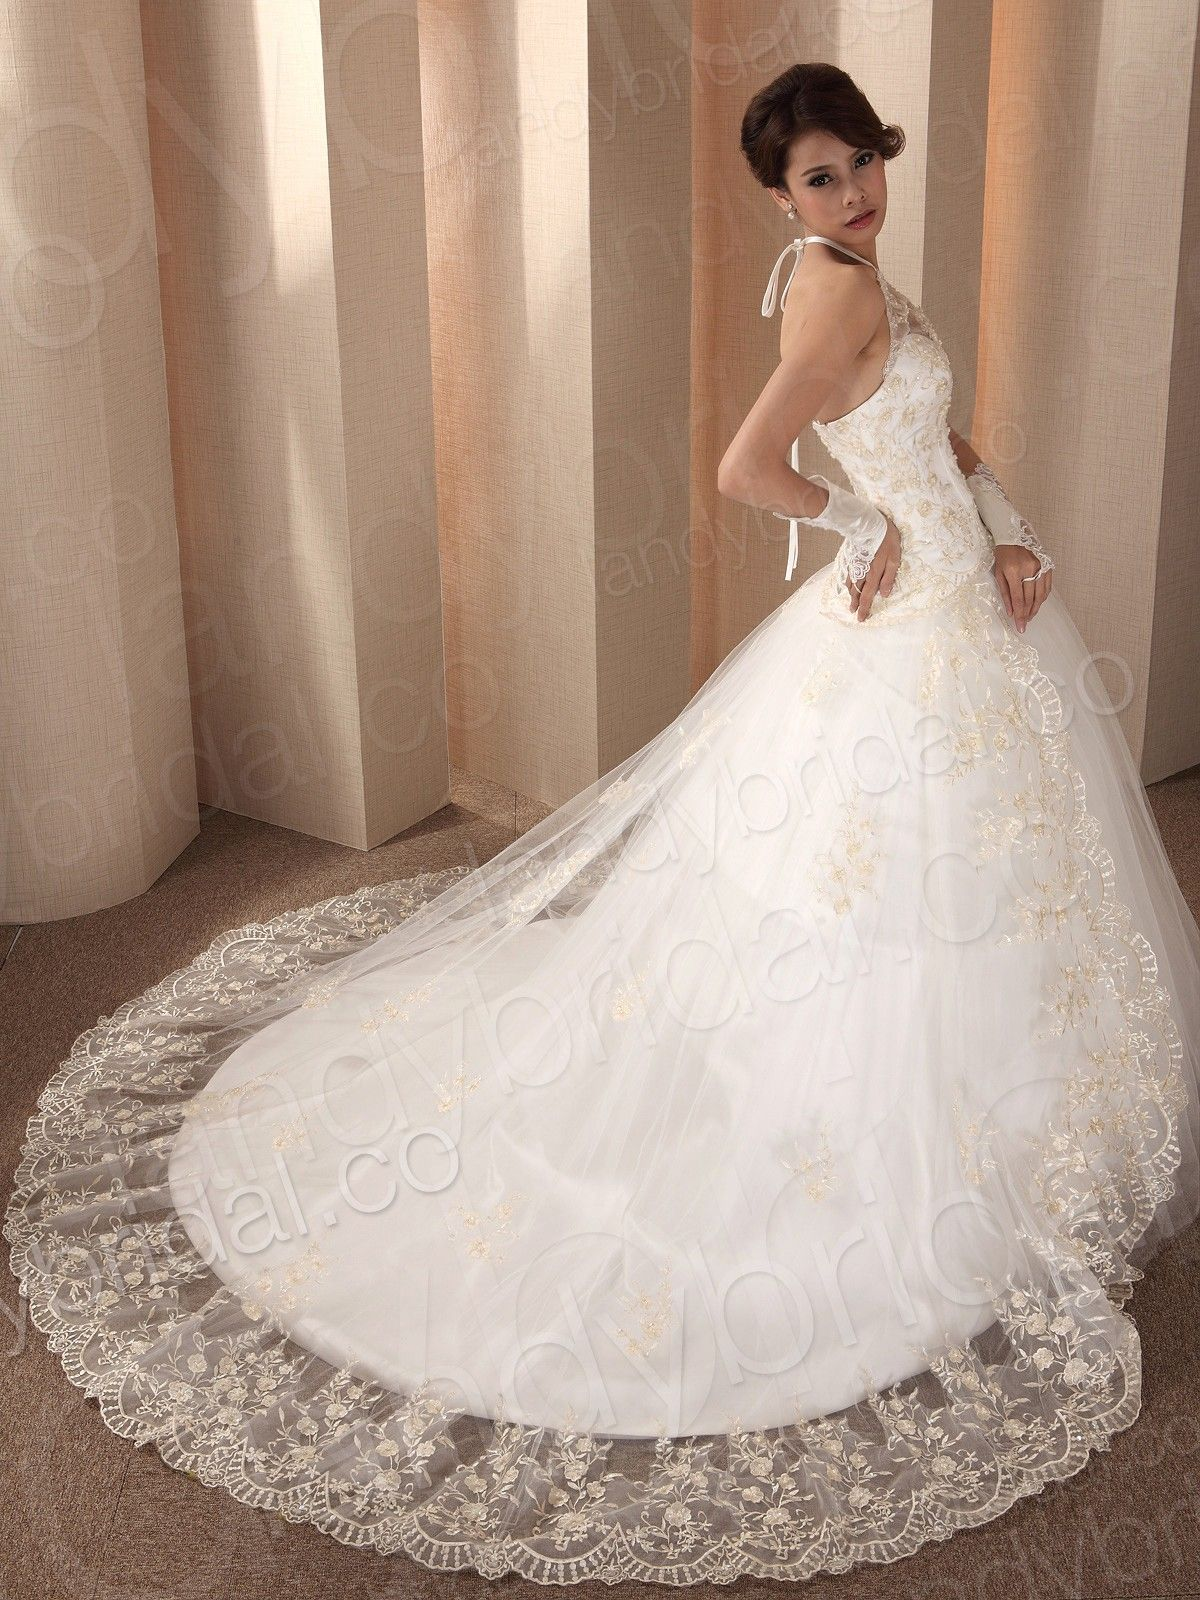 Lace Corset Ball Gown Wedding Dresses | Wedding Inspiration ...